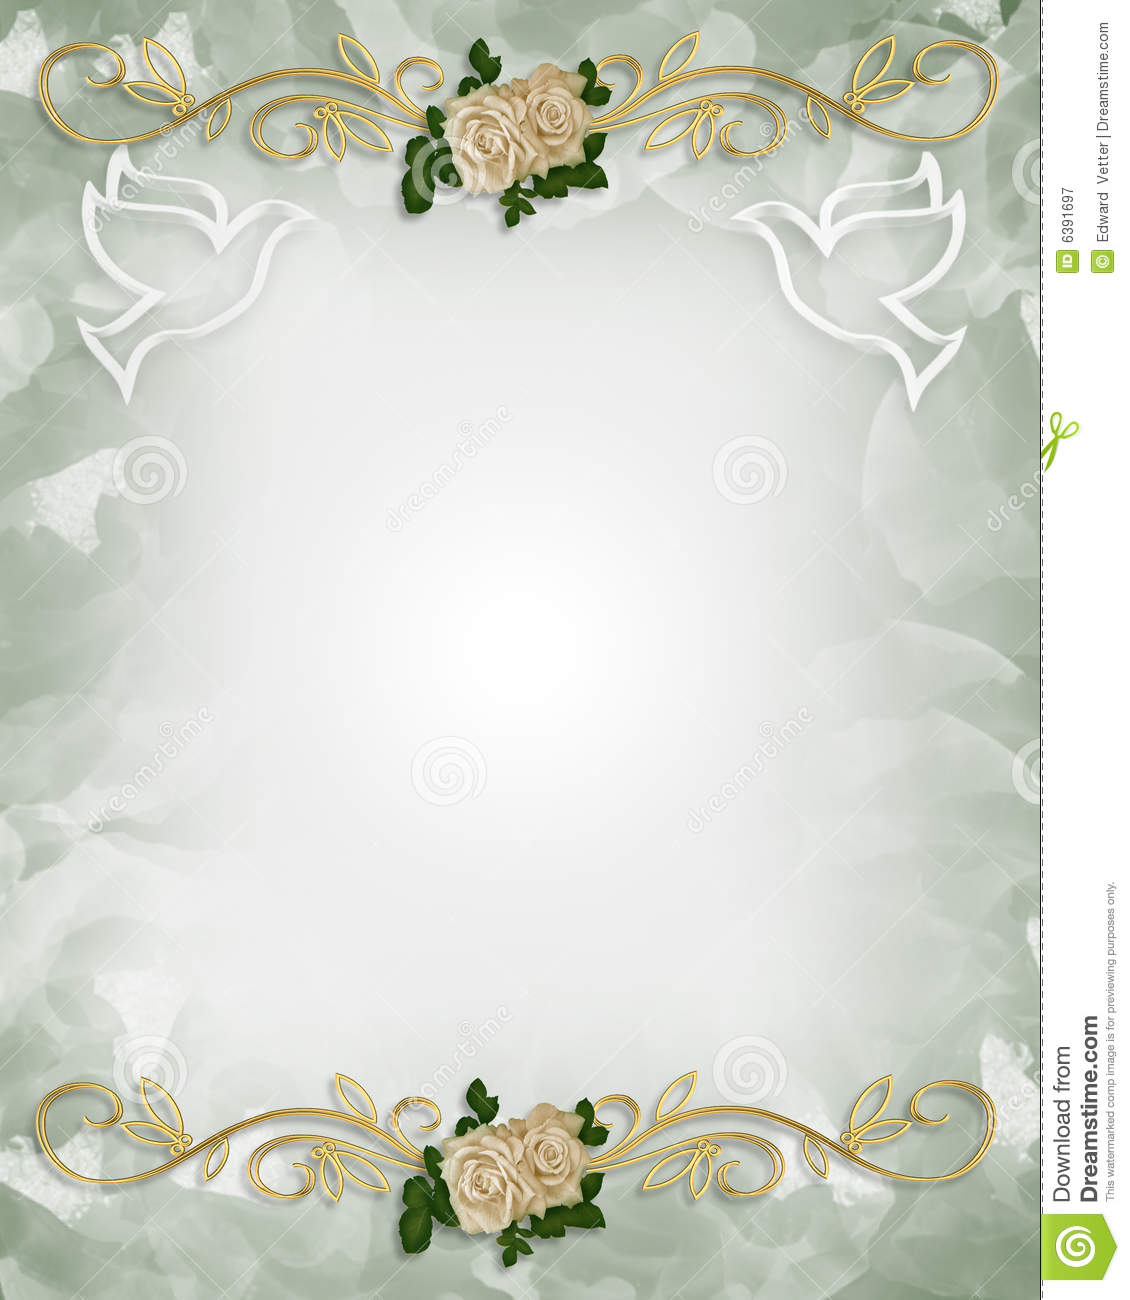 Wedding Invitation Backgrounds Download 1130x1300